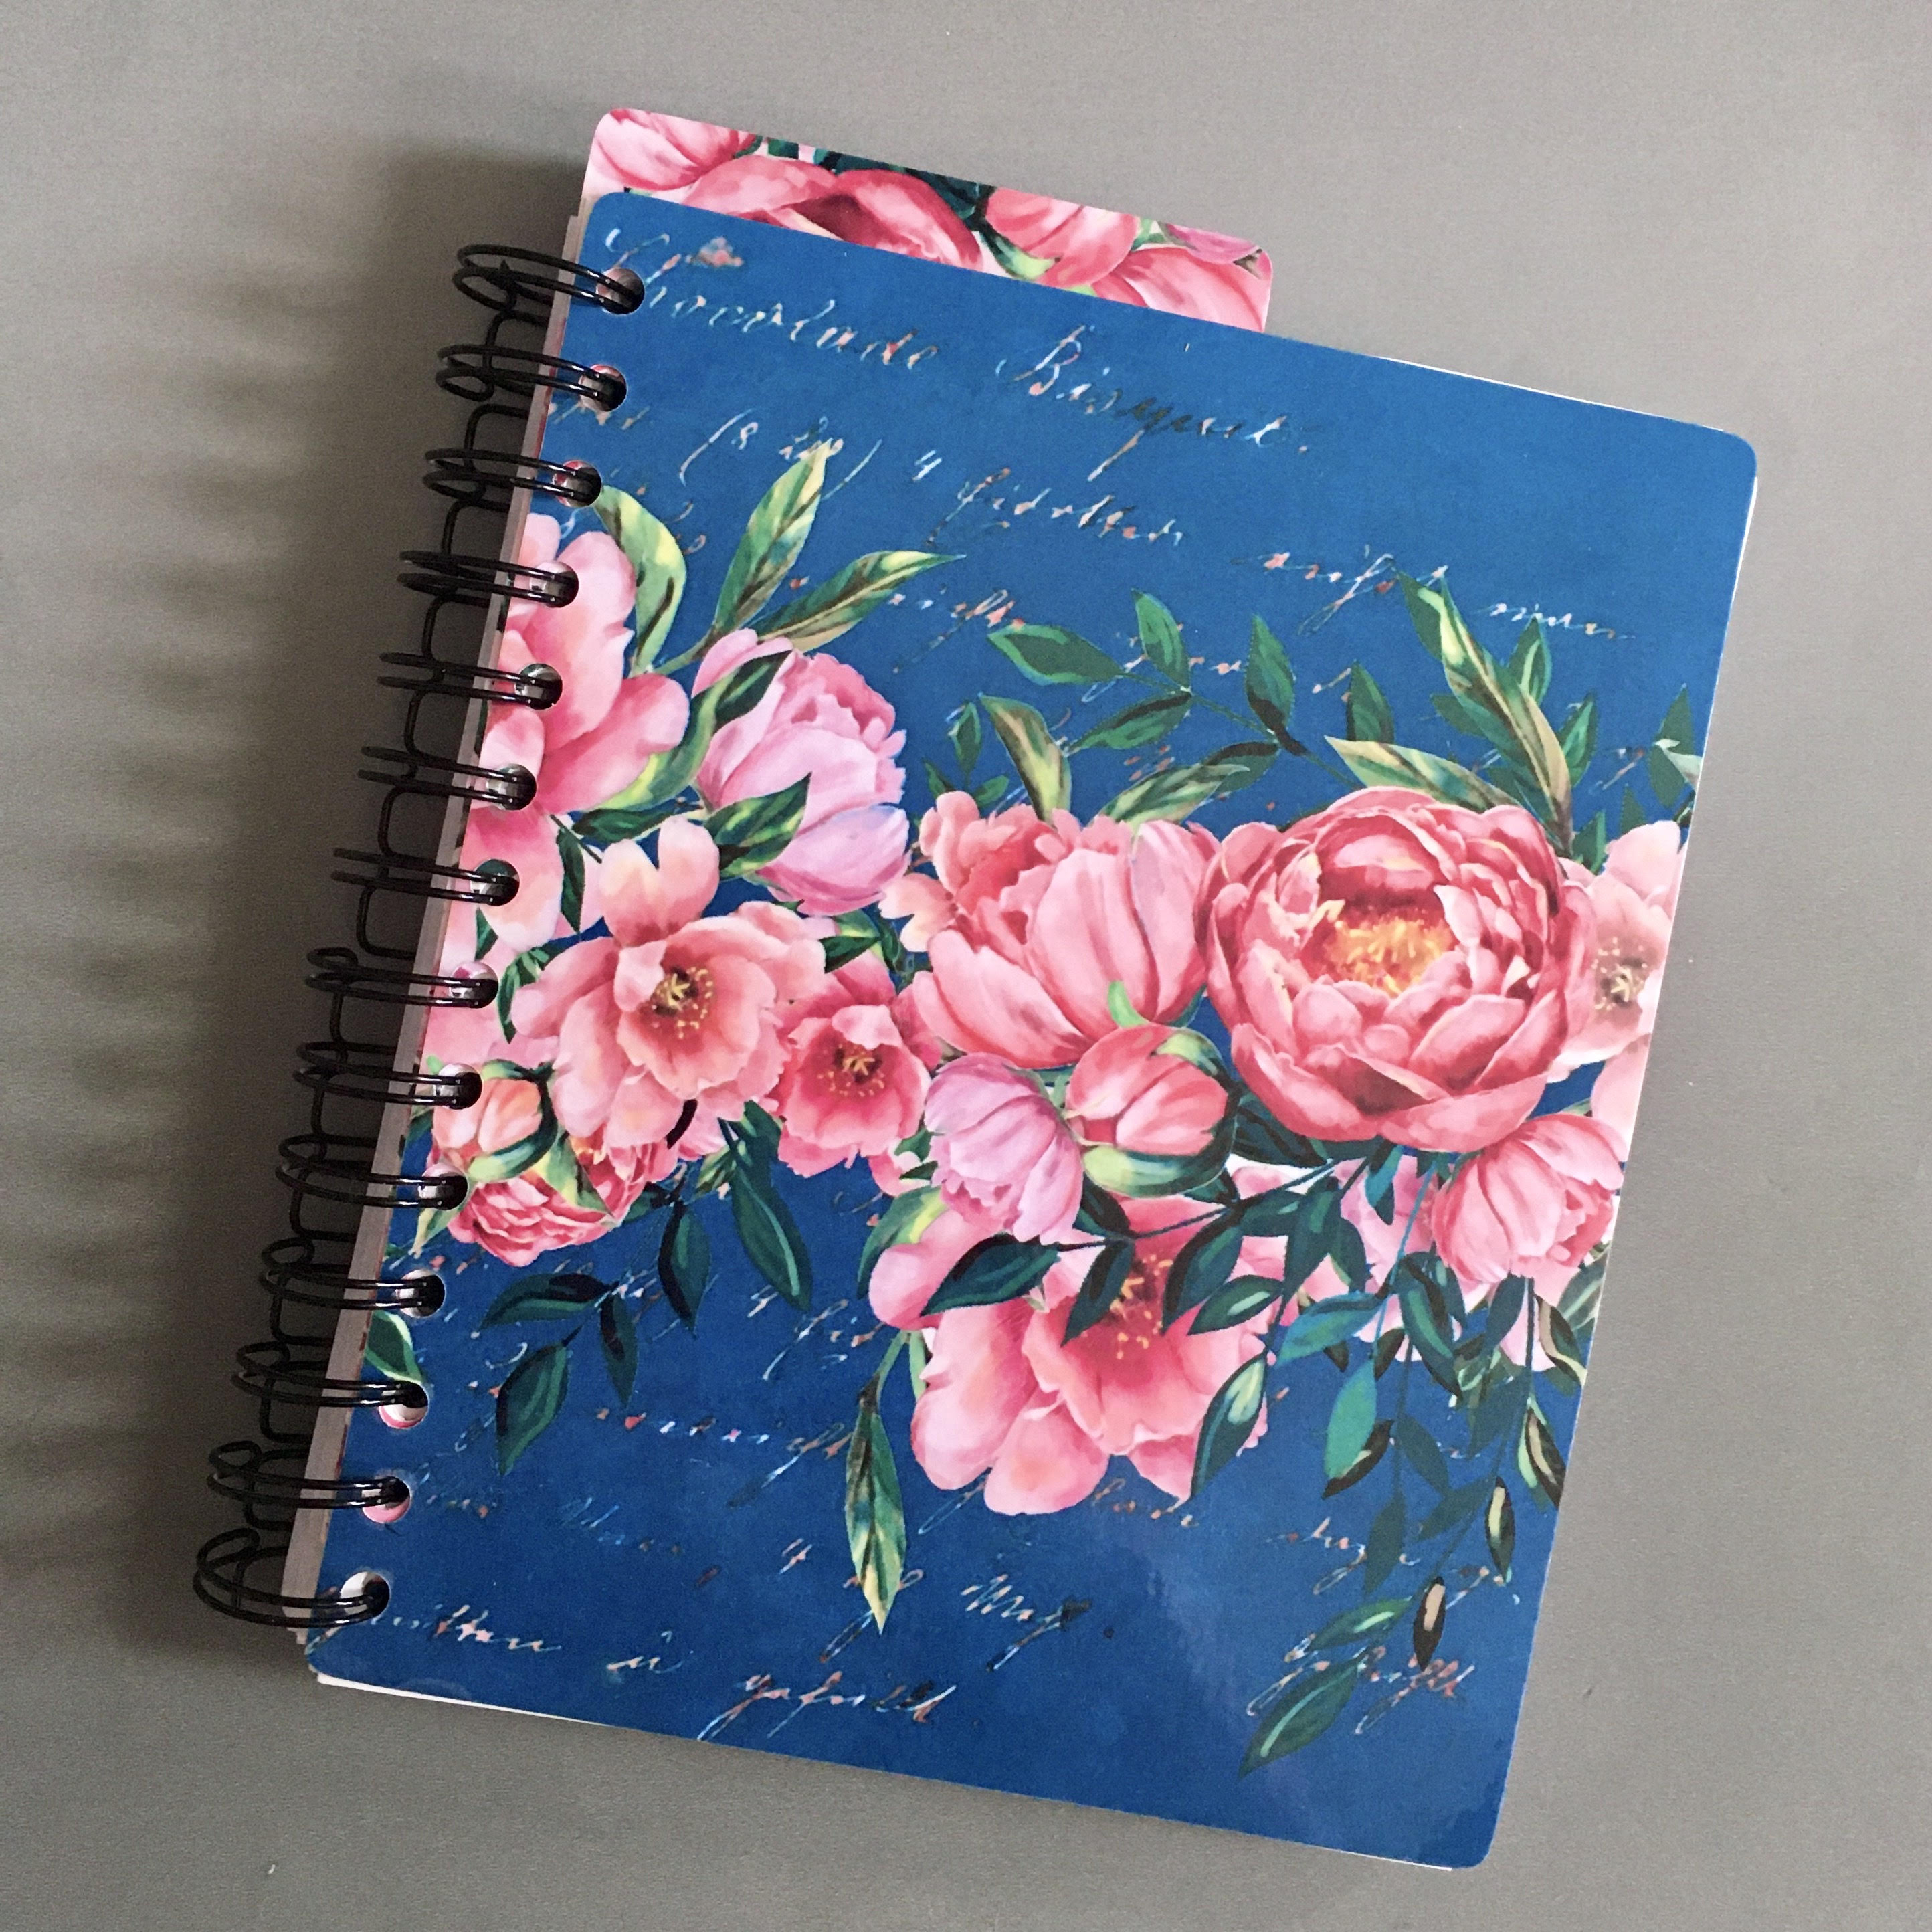 Girly Life planner with roses